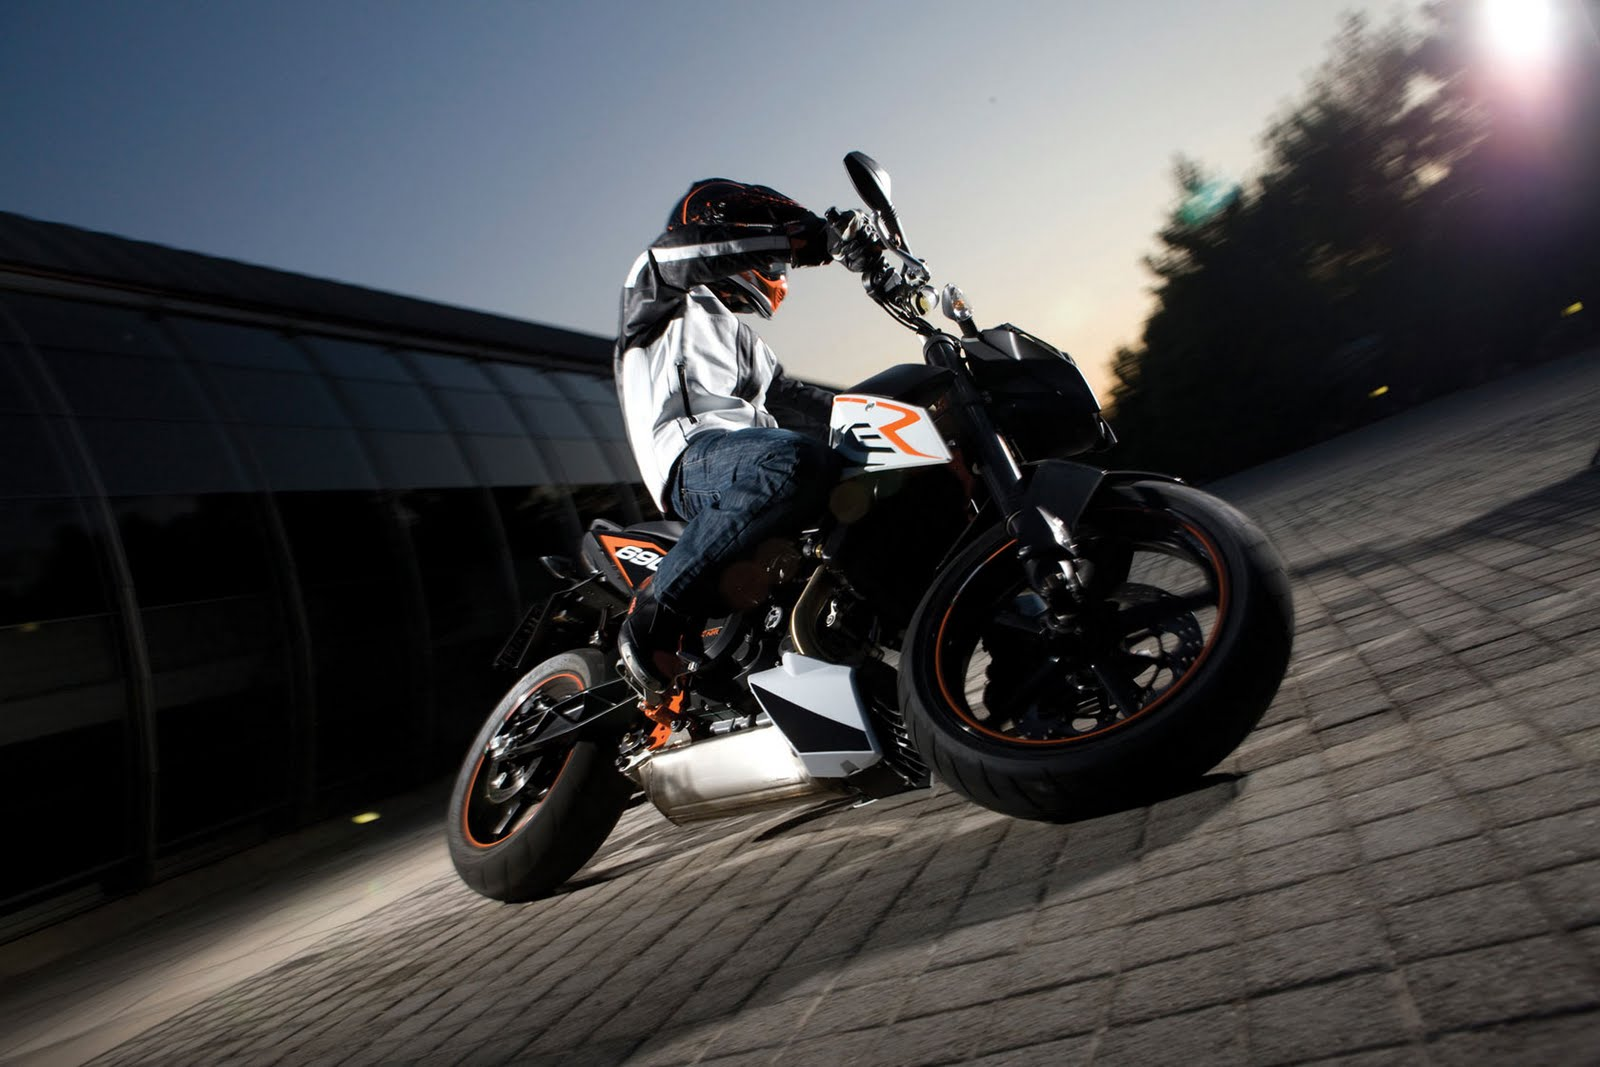 Ktm 690 smc r wallpapers for desktop - Http 3 Bp Blogspot Com _yrpky_unmww S8lxzb69dni Ktm 690